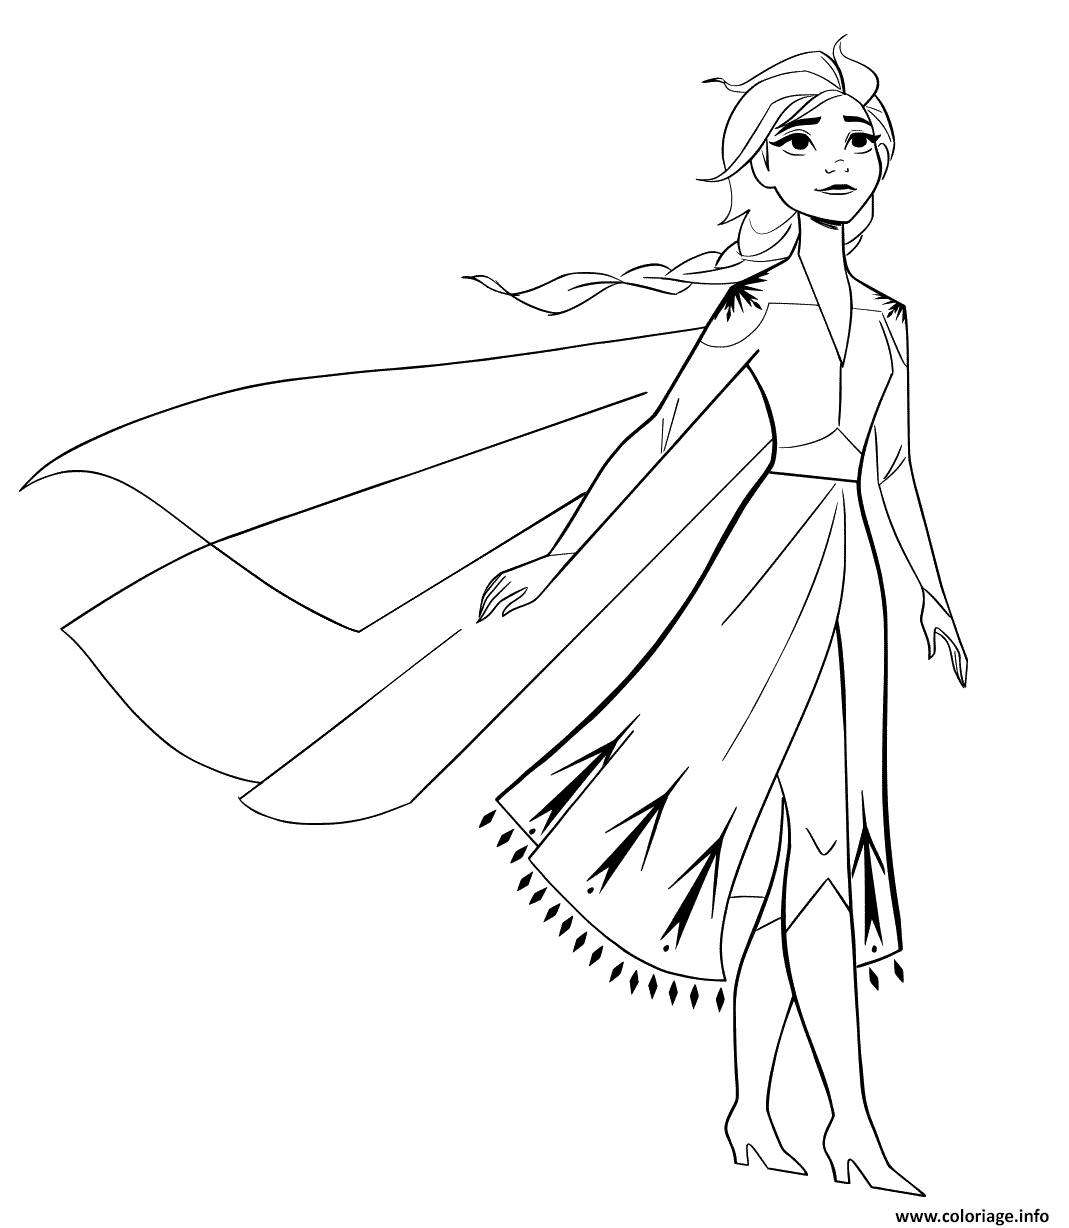 Coloriage Elsa From New Frozen 2 To Color Dessin